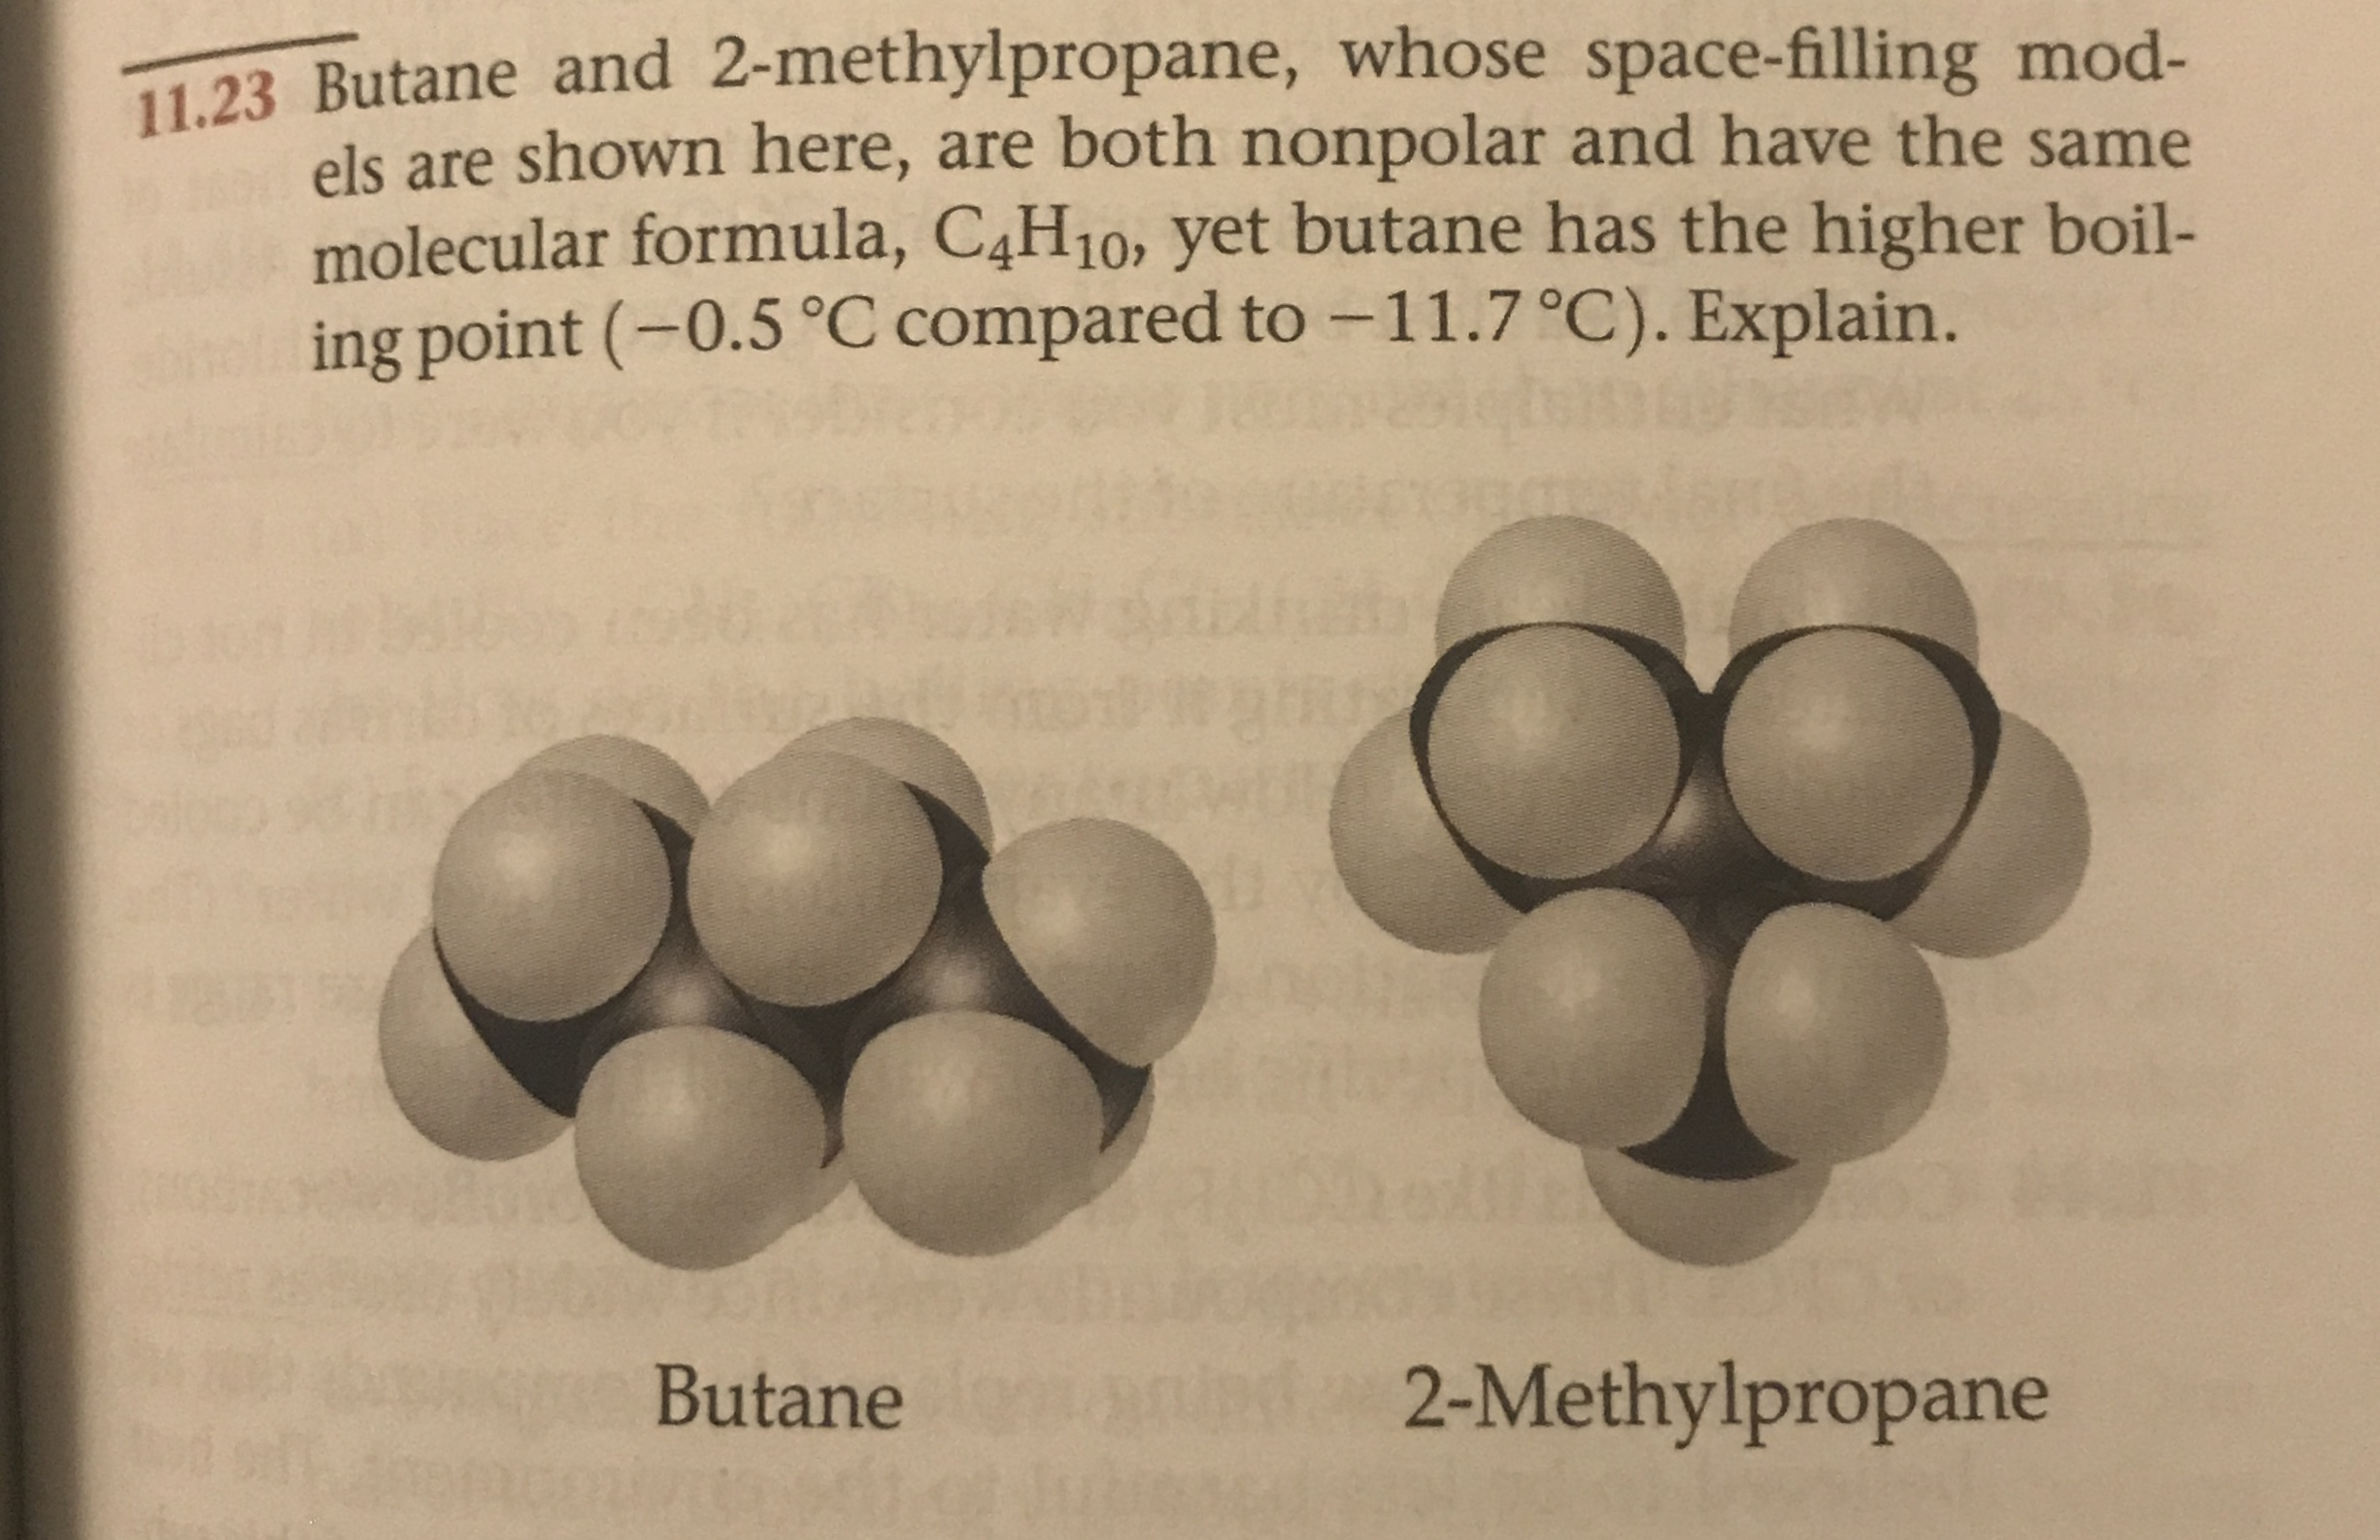 11.23 Butane and 2-methylpropane, whose space-filling mod- els are shown here, are both nonpolar and have the same molecular formula, C4H10, yet butane has the higher boil- ing point (-0.5 °C compared to-11.7 °C). Explain. 2-Methylpropane Butane